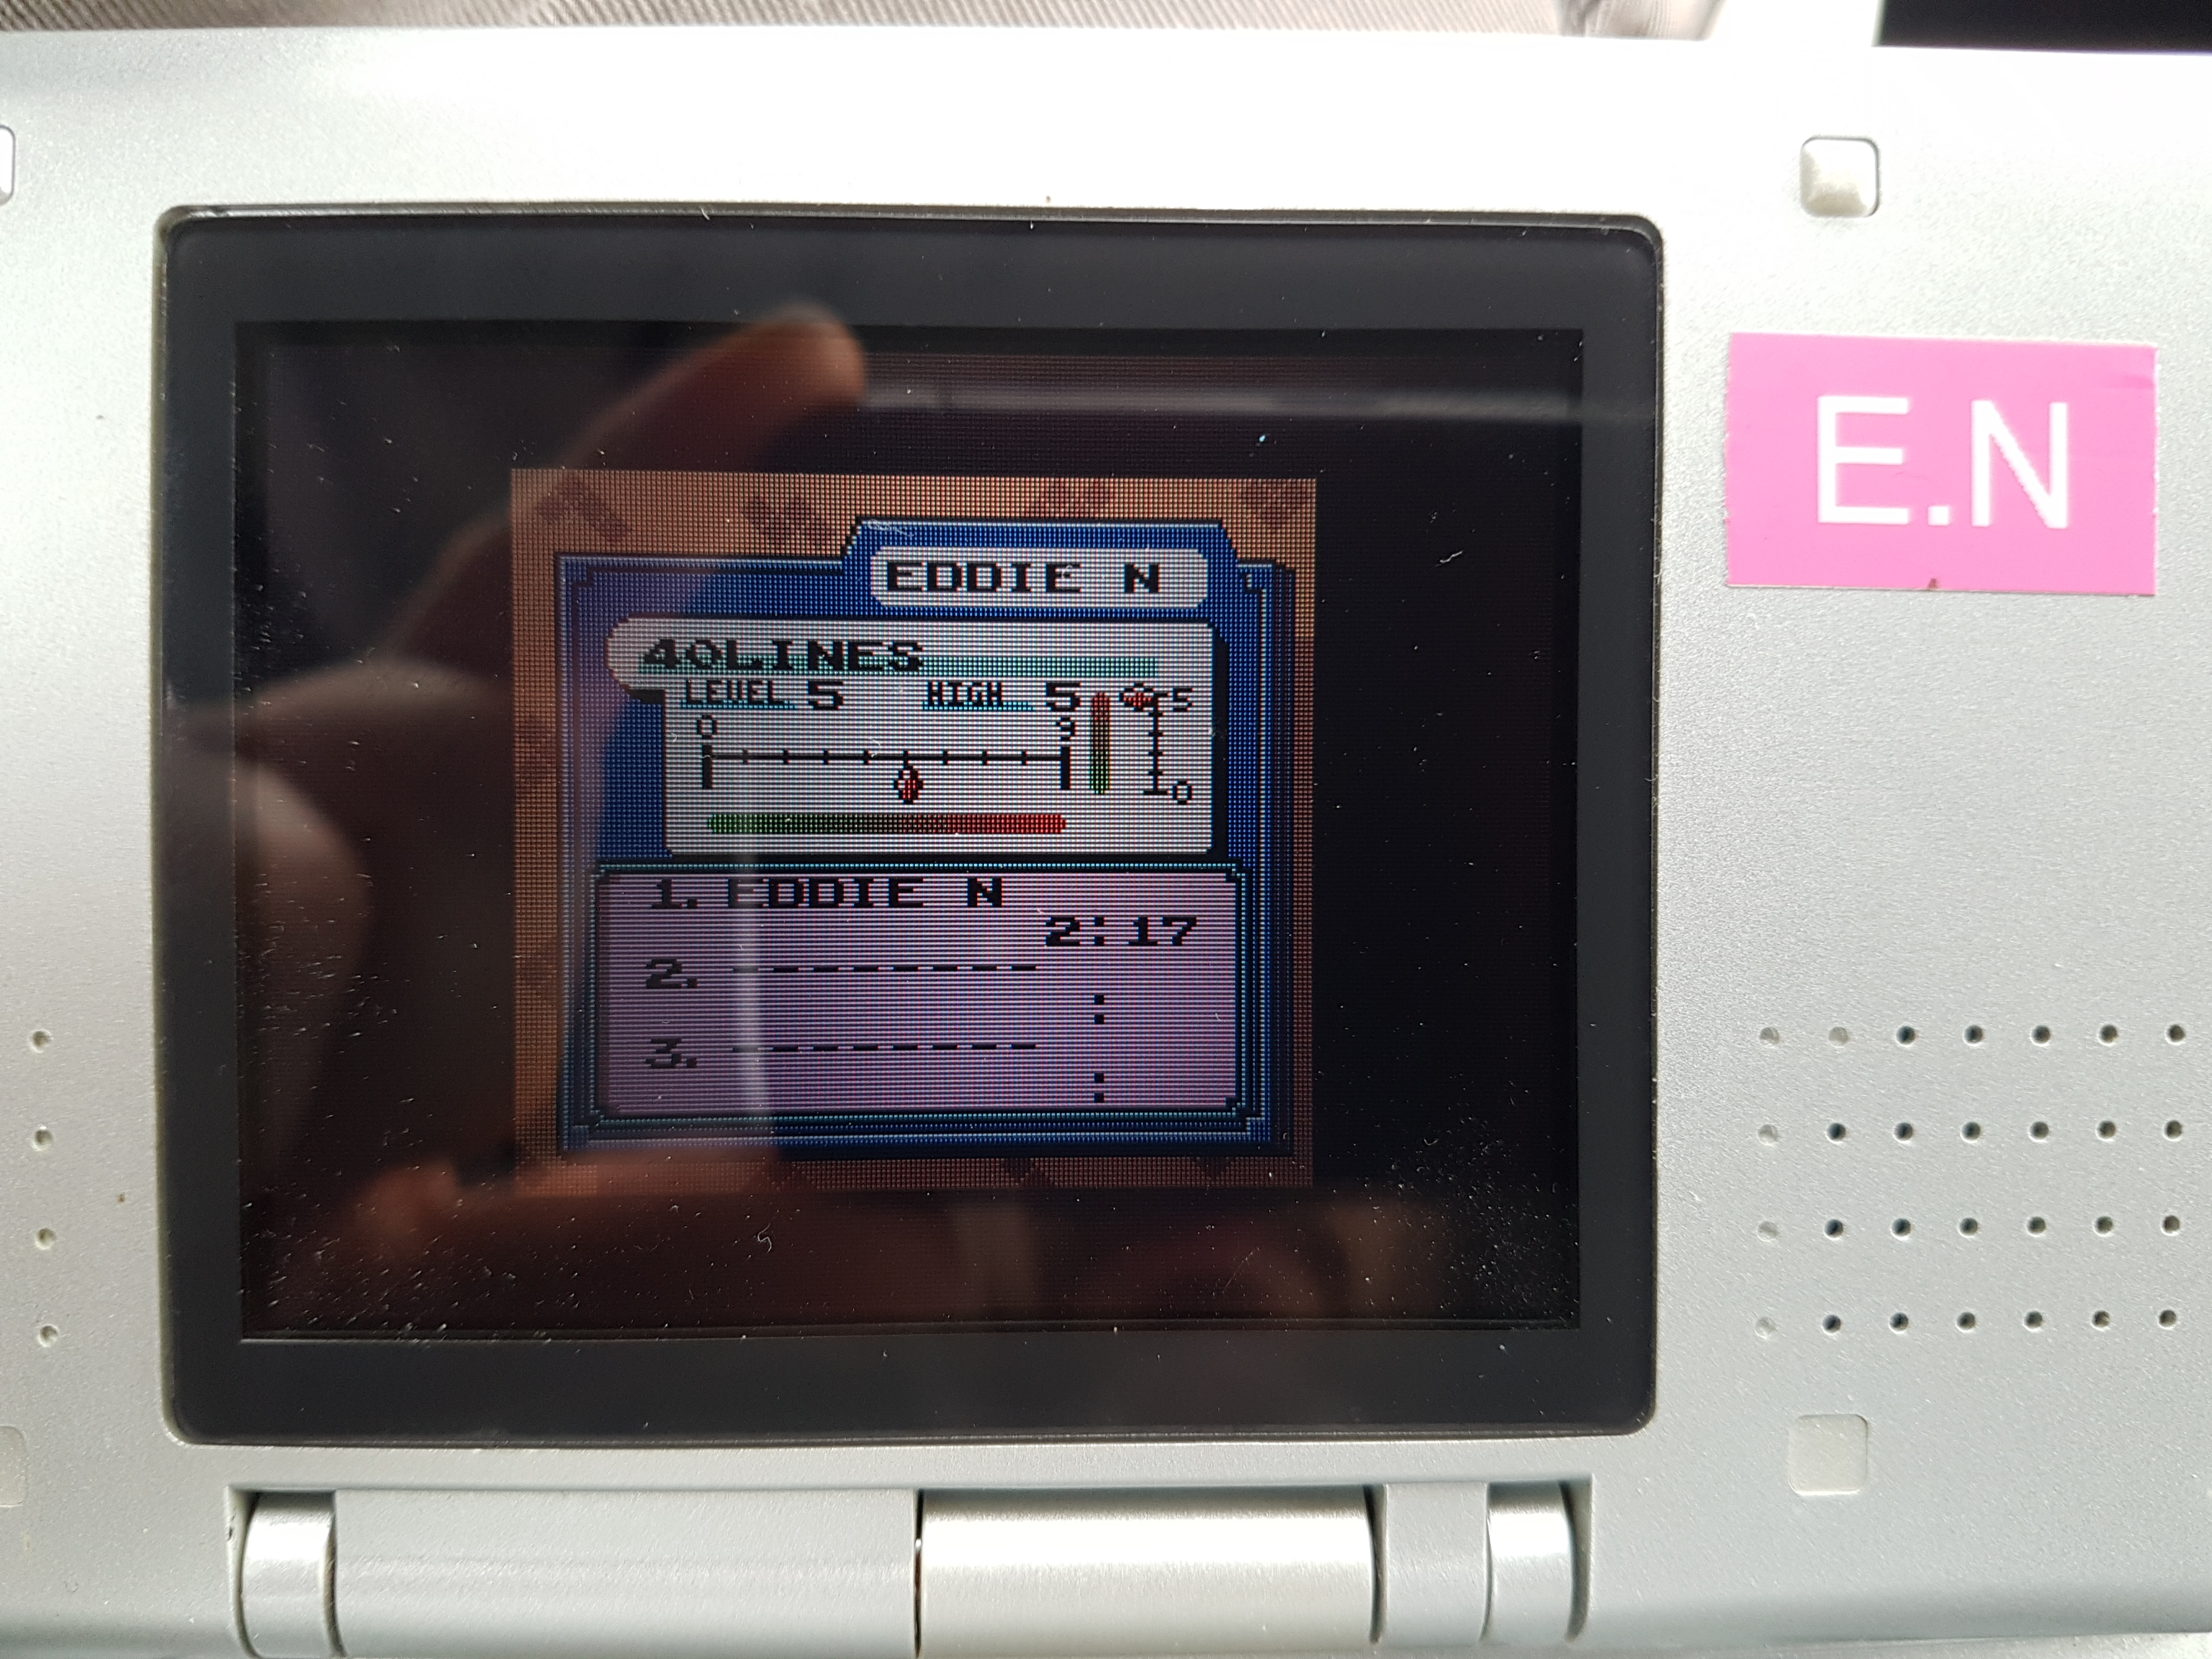 EddieNiceguy: Tetris DX: 40 Lines [Level 5/Height 5] (Game Boy Color Emulated) 0:02:17 points on 2019-01-25 05:52:30